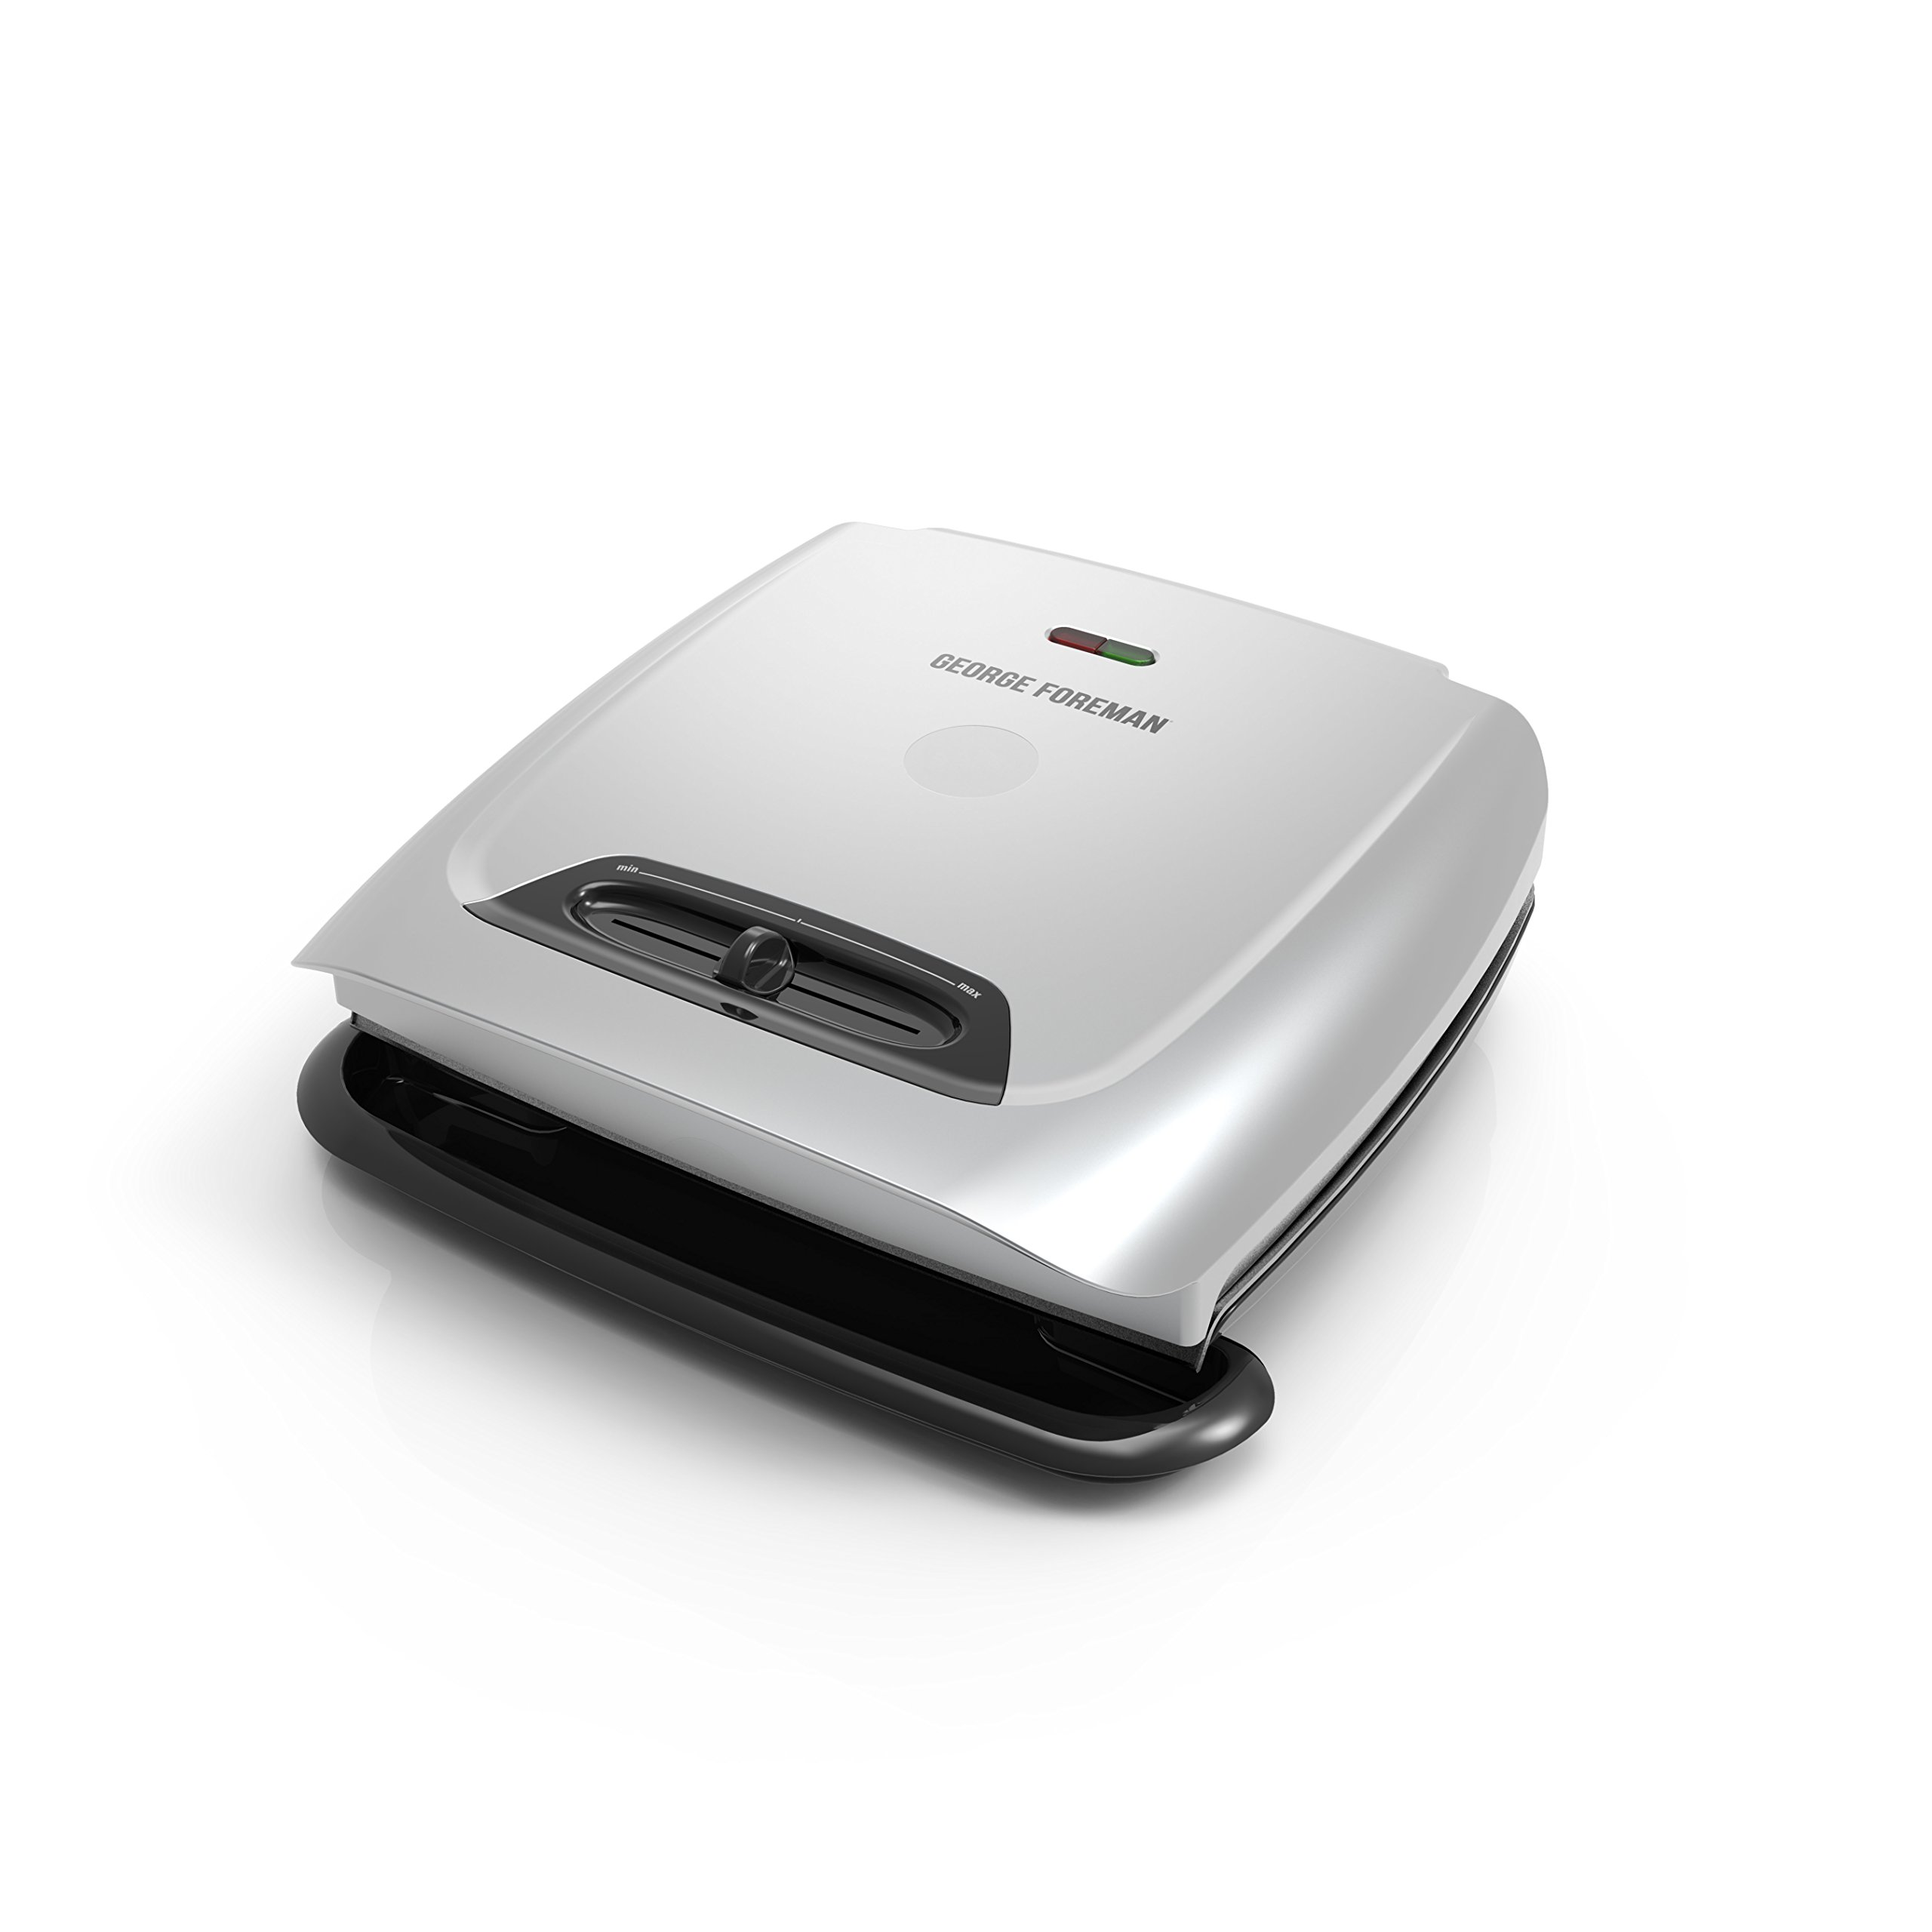 George Foreman 8-Serving Classic Plate Grill and Panini Press with Adjustable Temperature, Platinum, GR2121P by George Foreman